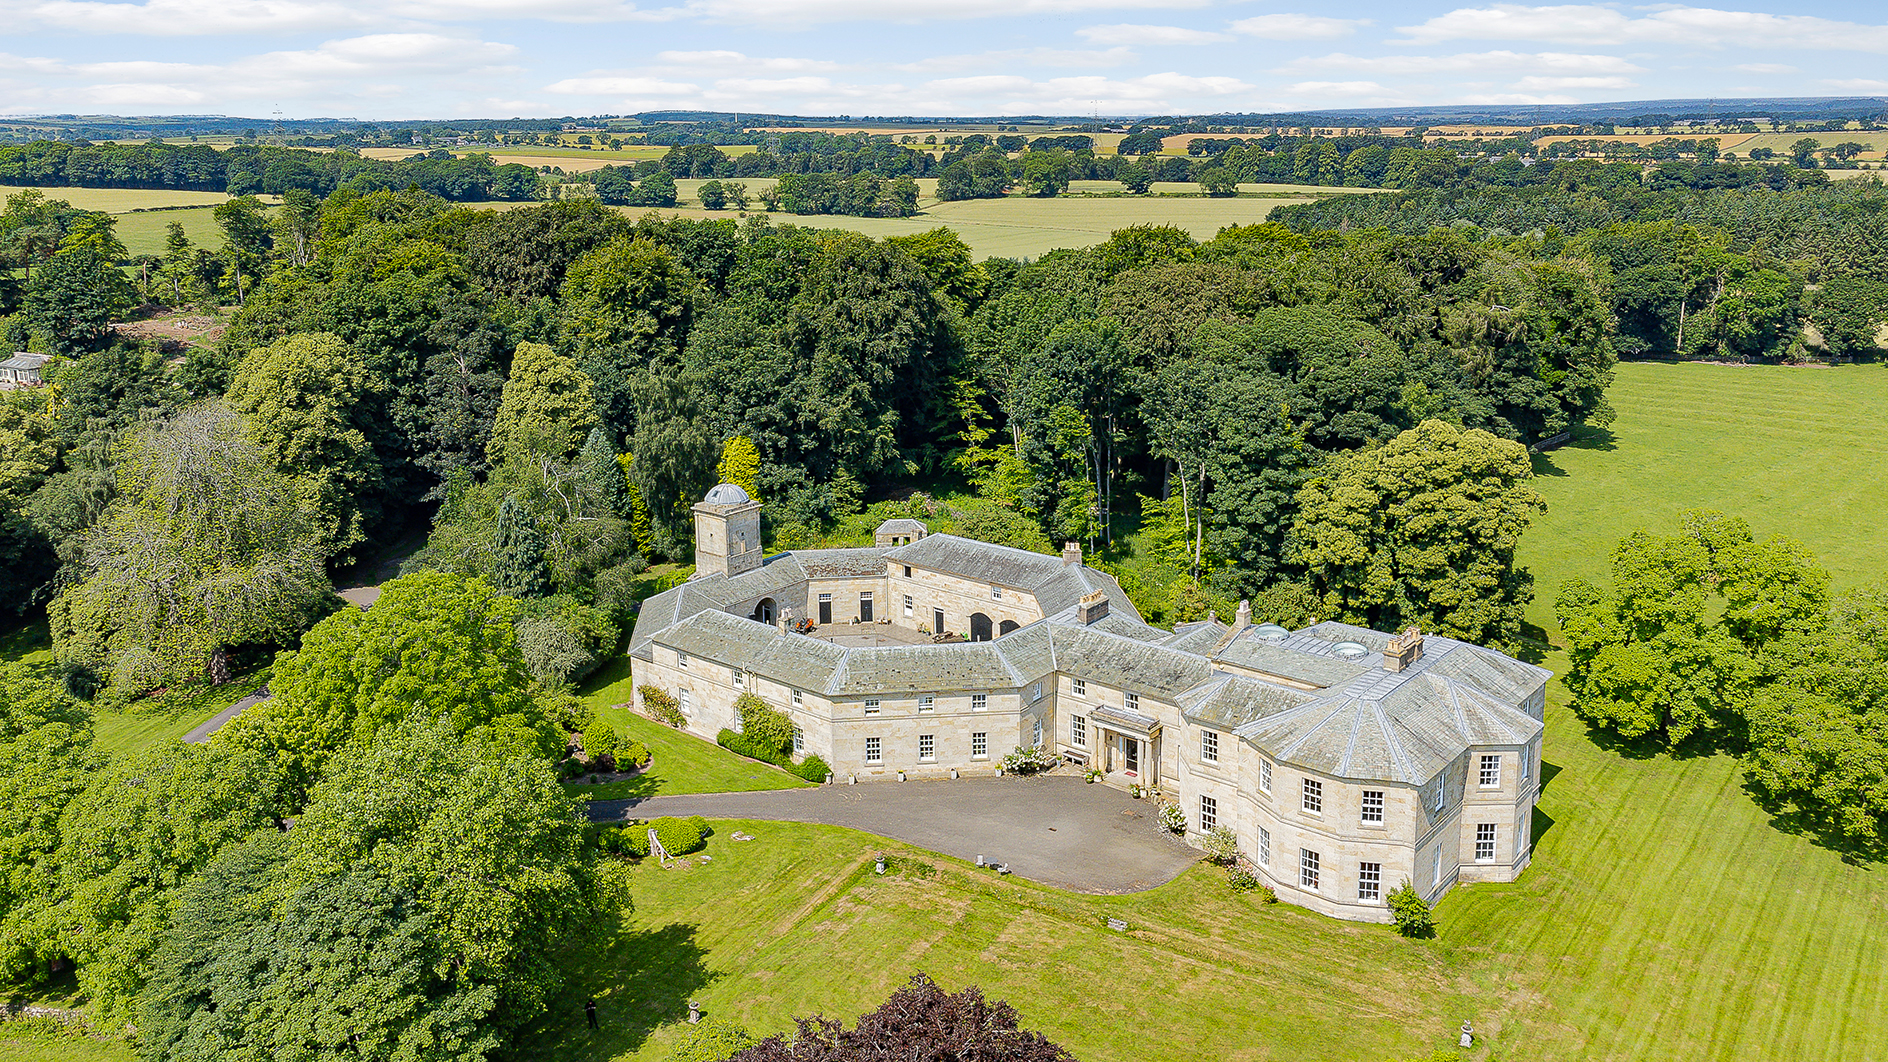 A hidden gem that's one of the prettiest country houses in Northumberland, set in 24 glorious acres of woodland gardens - Country Life